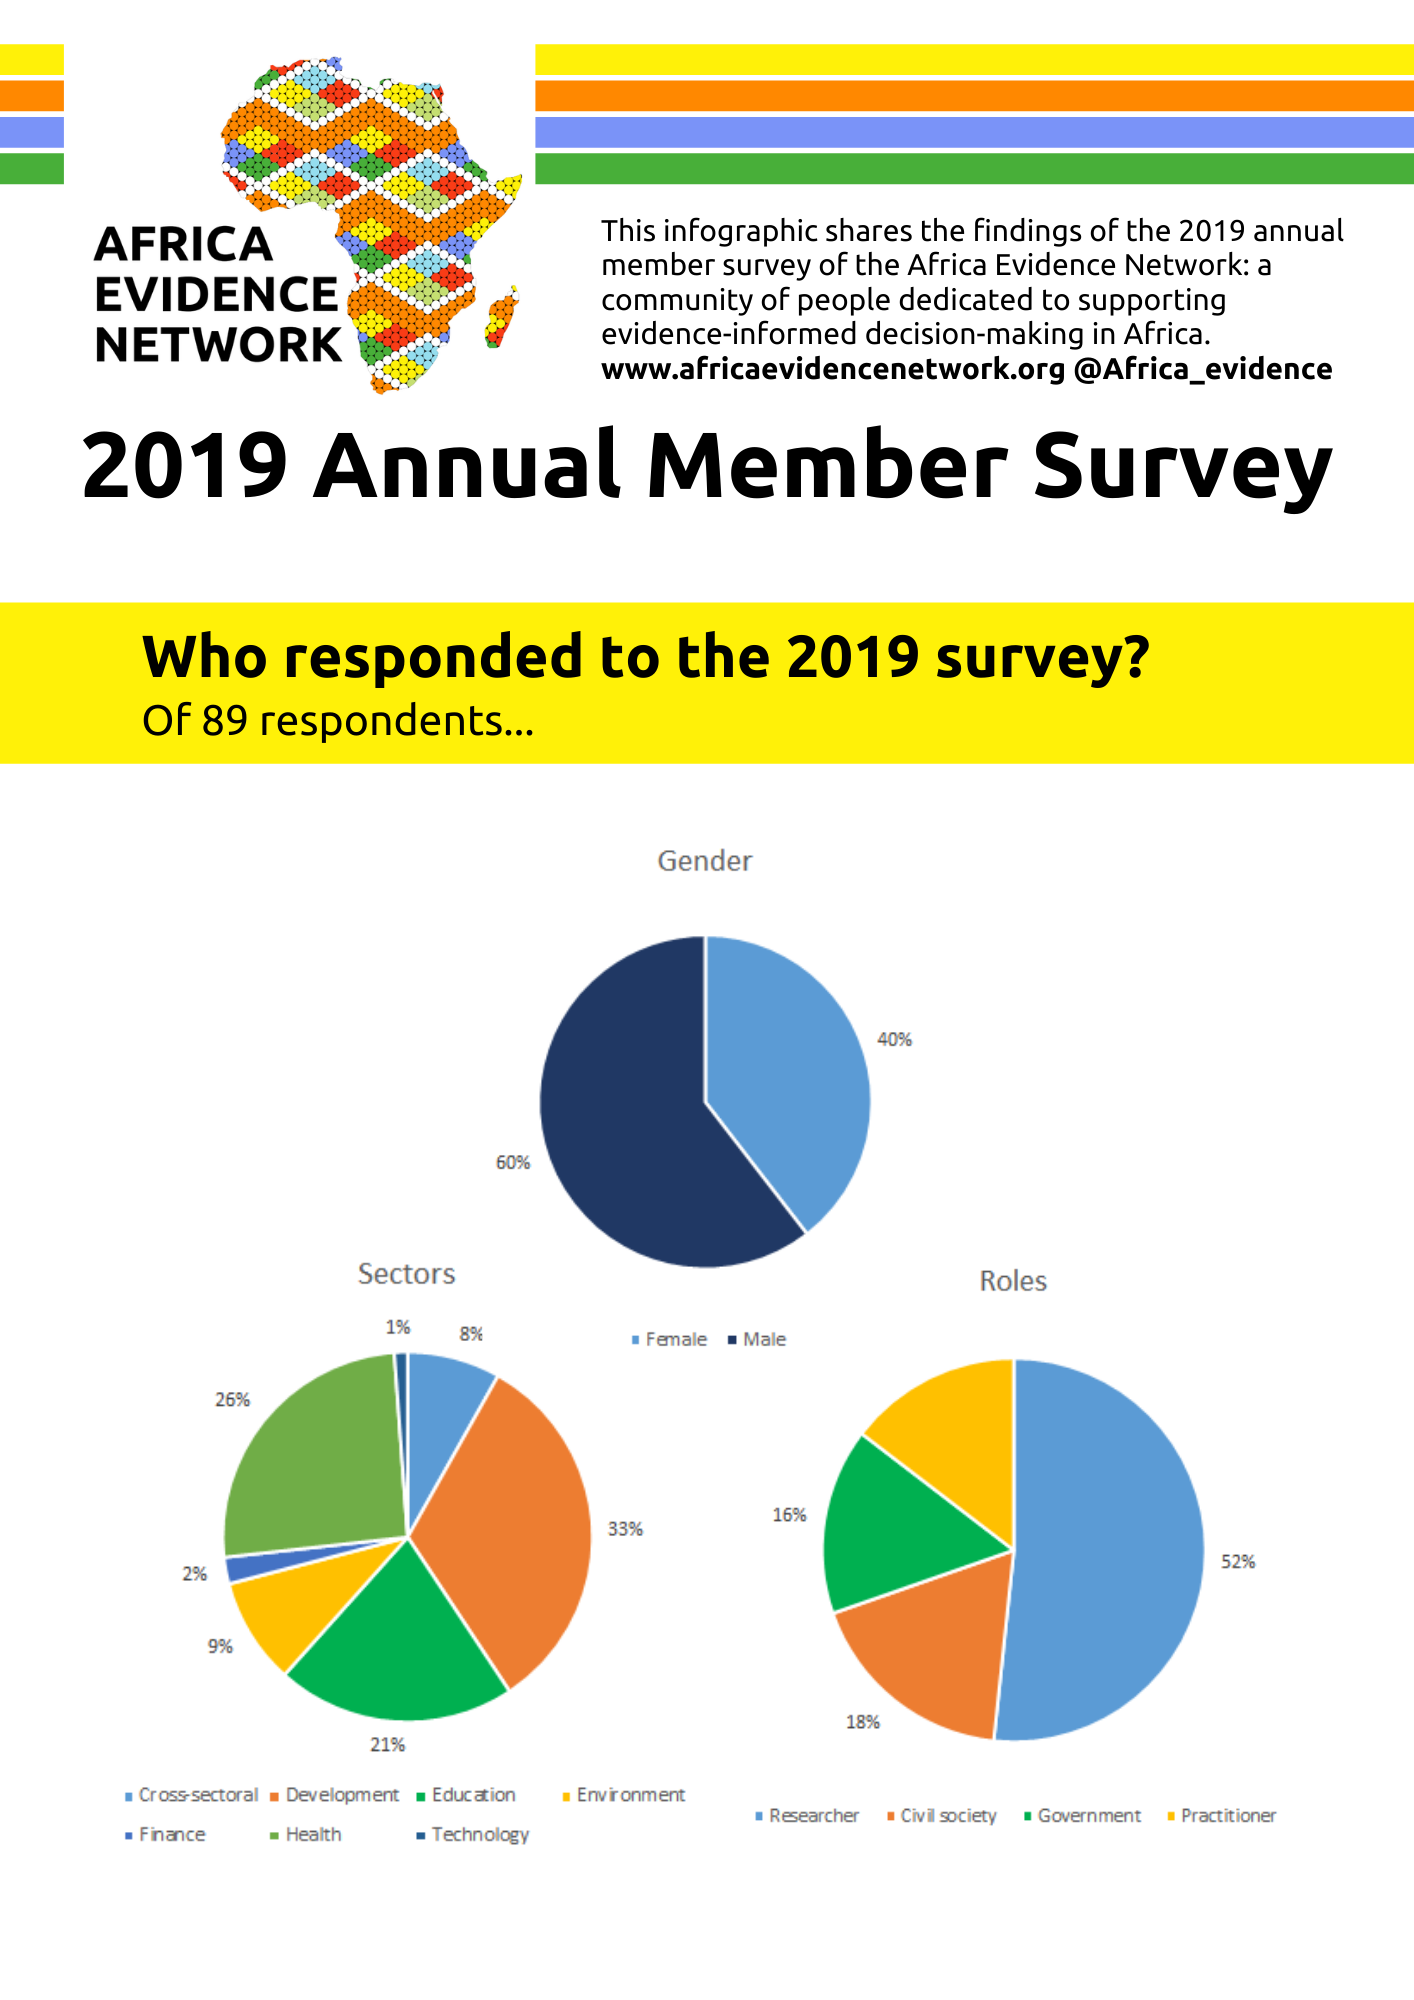 Annual member survey for 2019 - infographic